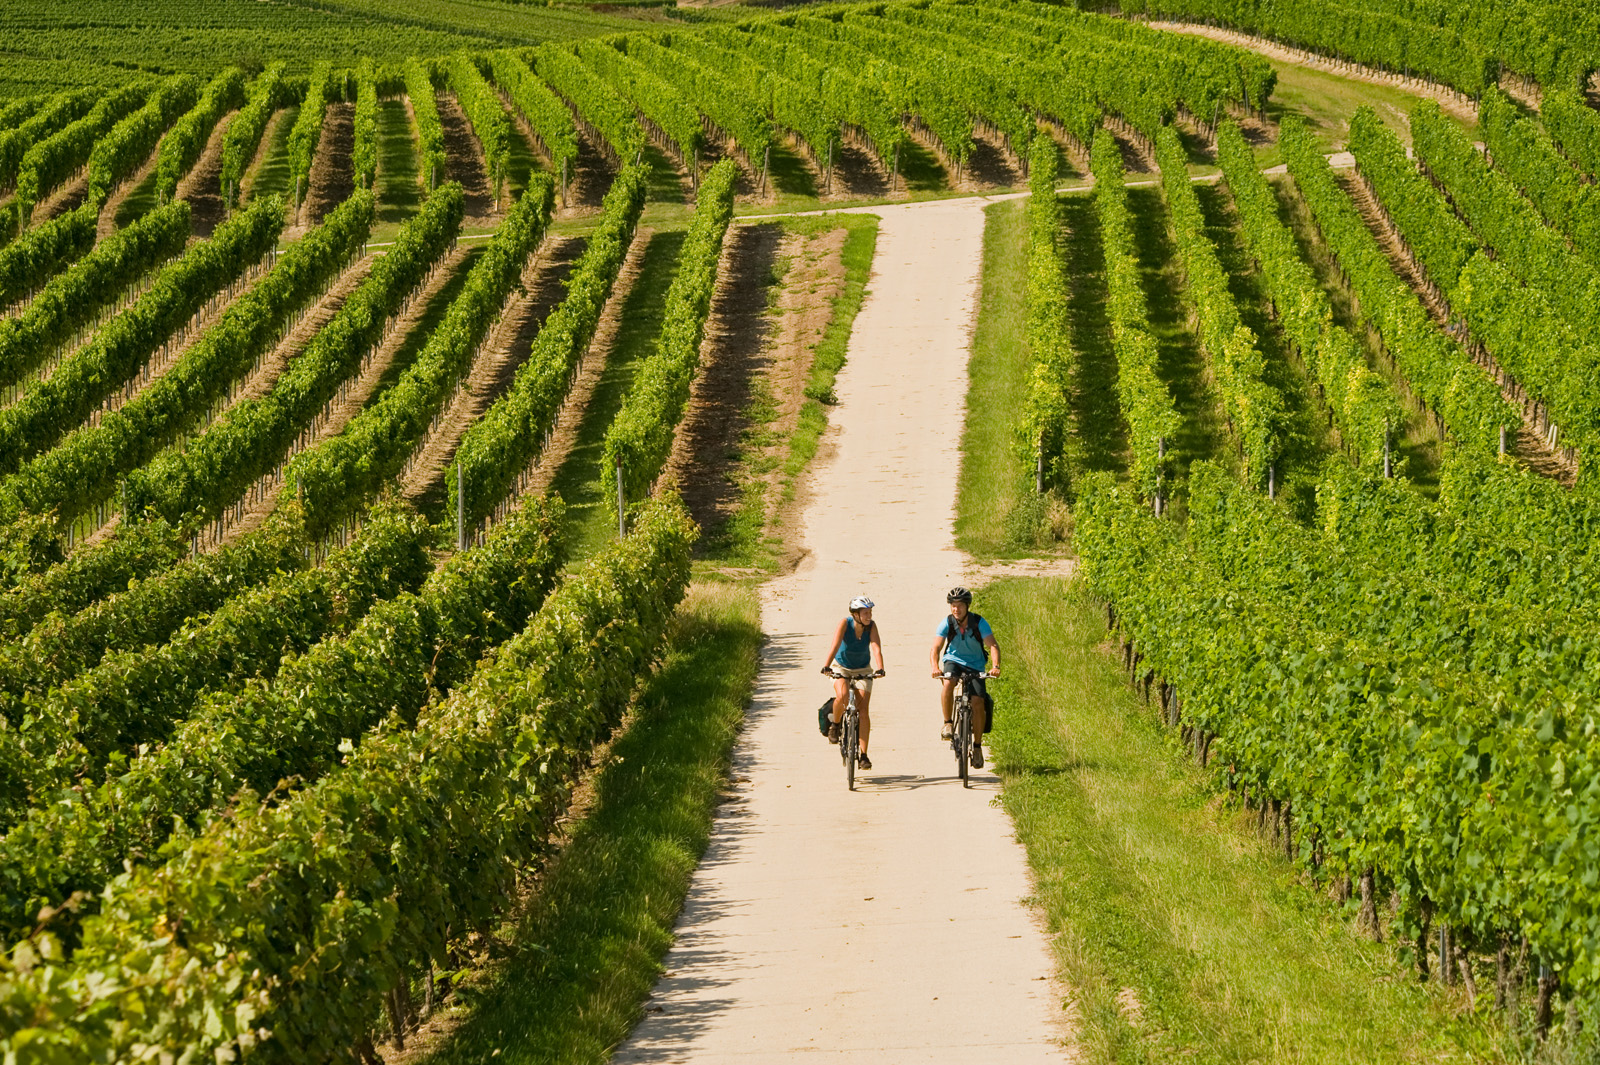 Cyclists in a vineyard landscape, Rhine-Hesse